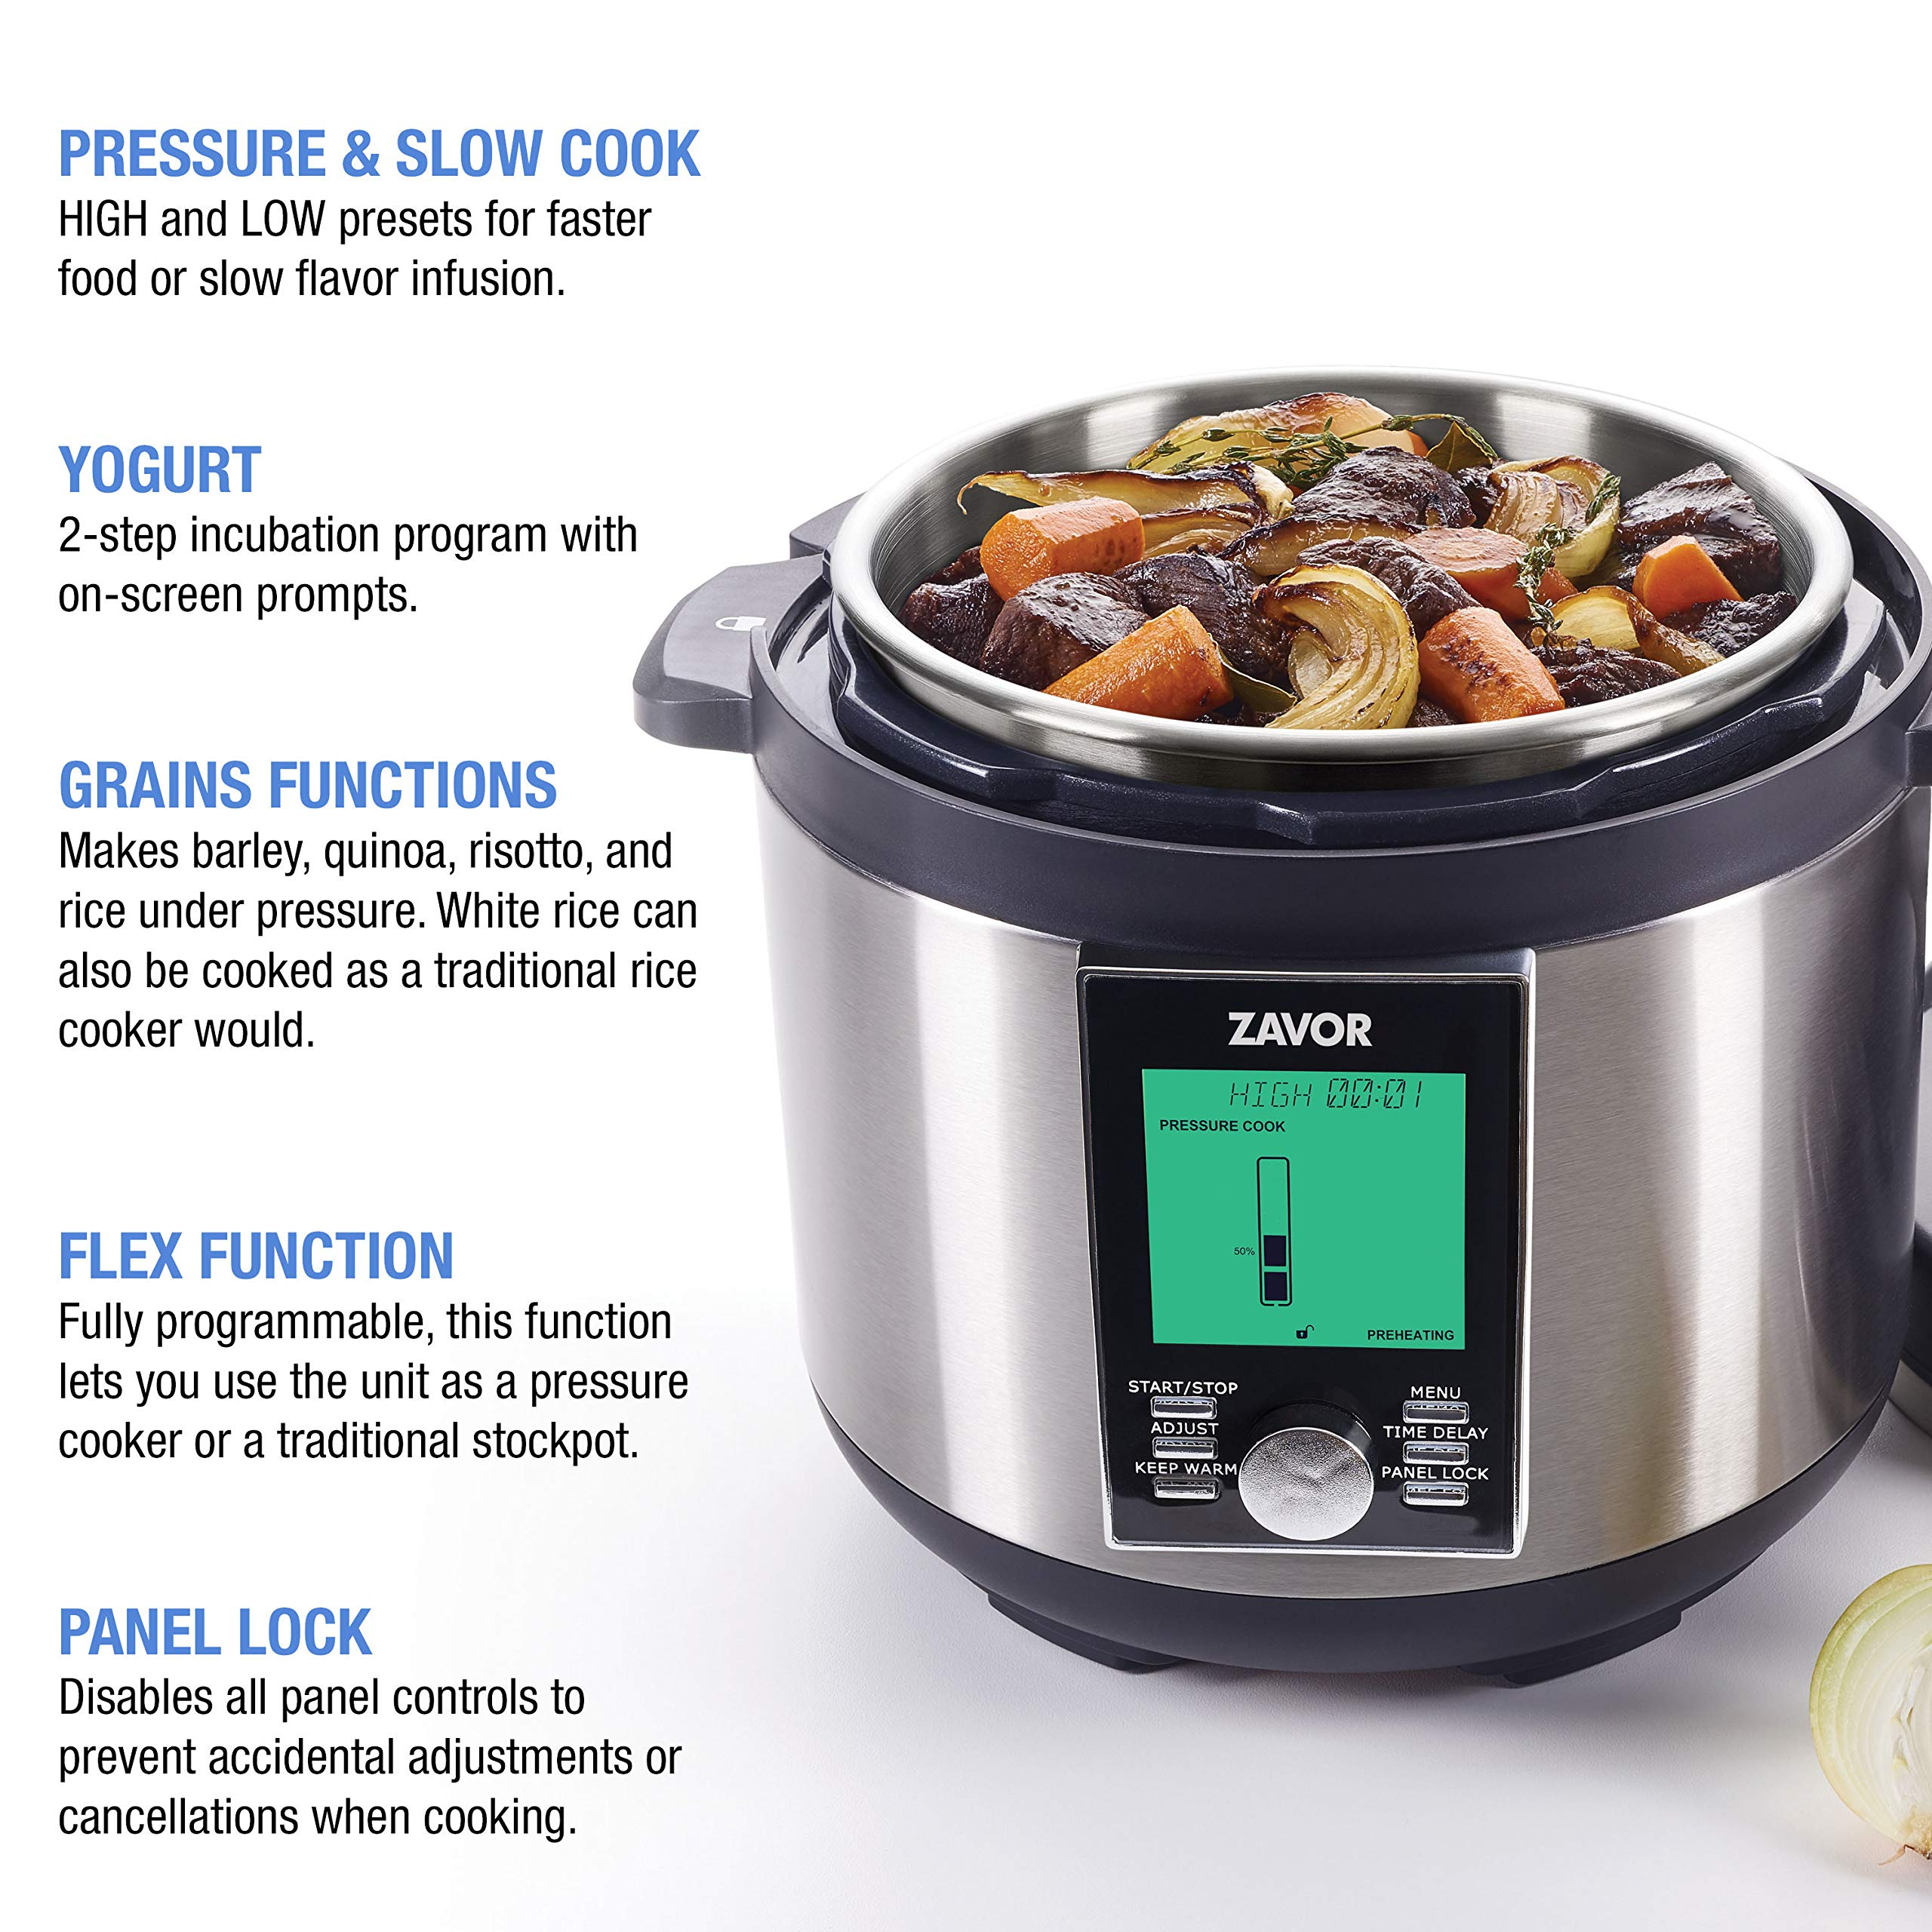 Zavor LUX LCD 8 Quart Programmable Electric Multi-Cooker: Pressure Cooker, Slow Cooker, Rice Cooker, Yogurt Maker, Steamer and more - Stainless Steel (ZSELL03) by ZAVOR (Image #3)